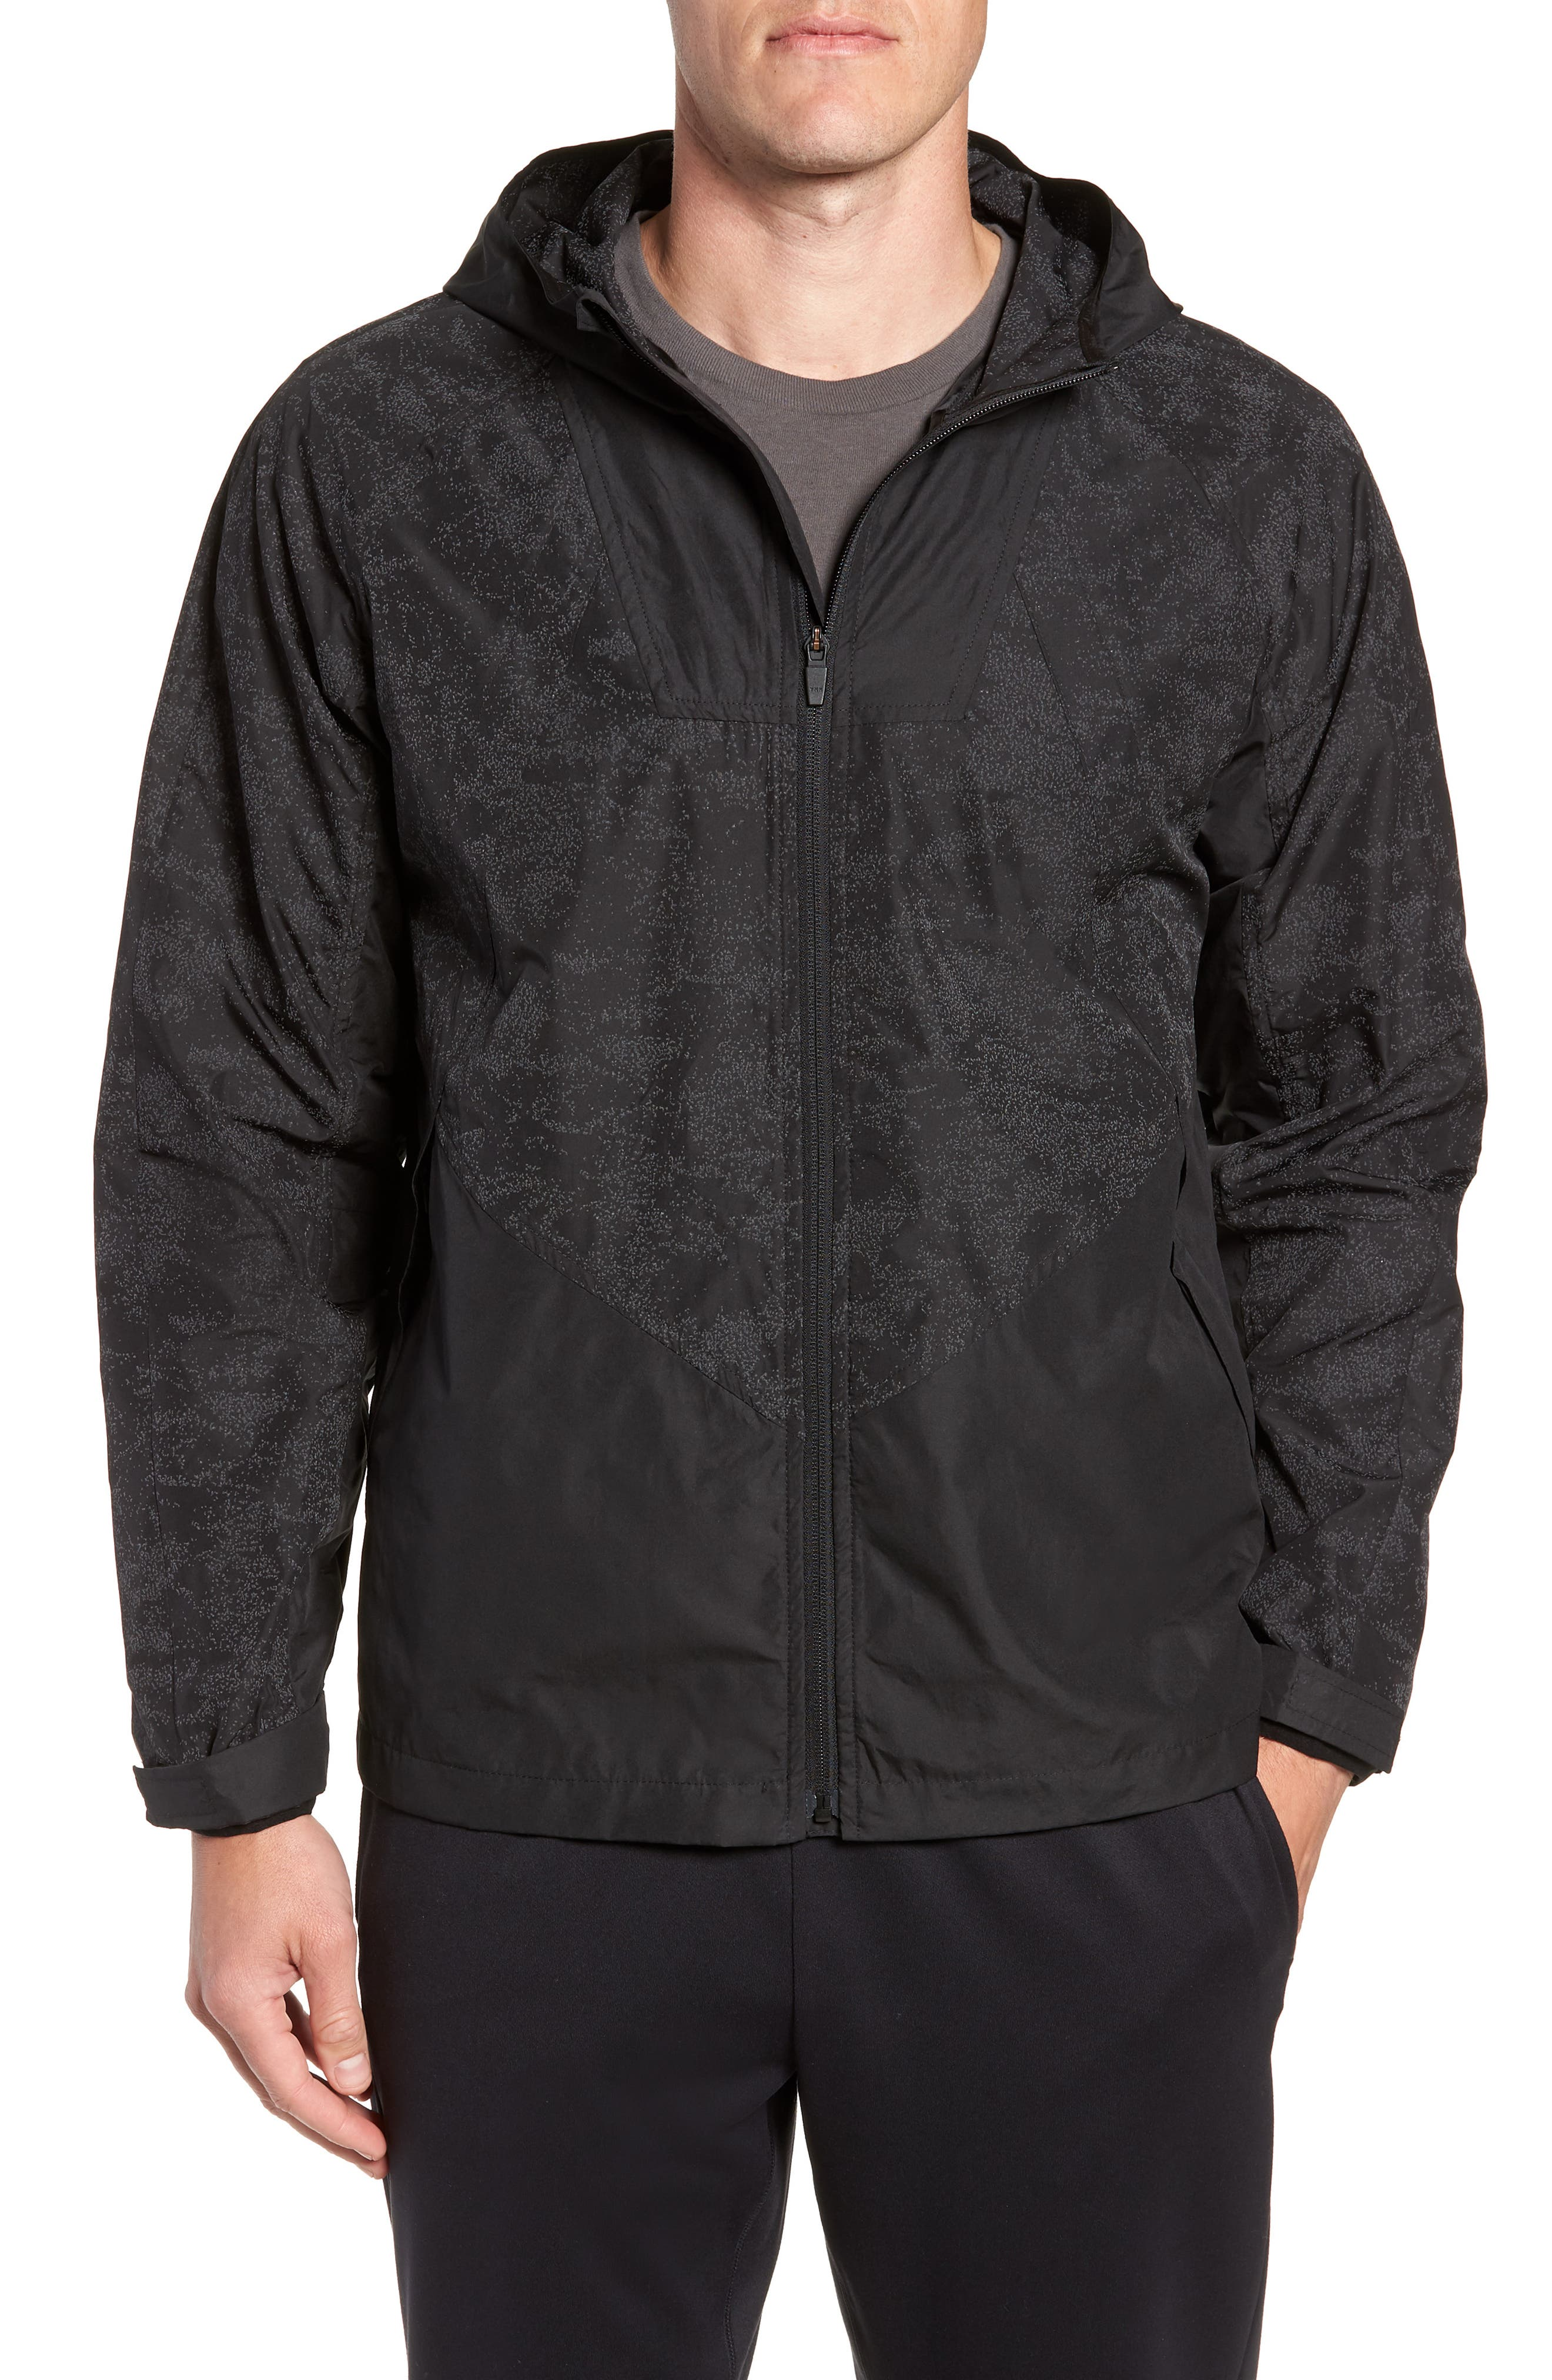 Hooded Reflective Jacket,                         Main,                         color, BLACK REFLECTIVE